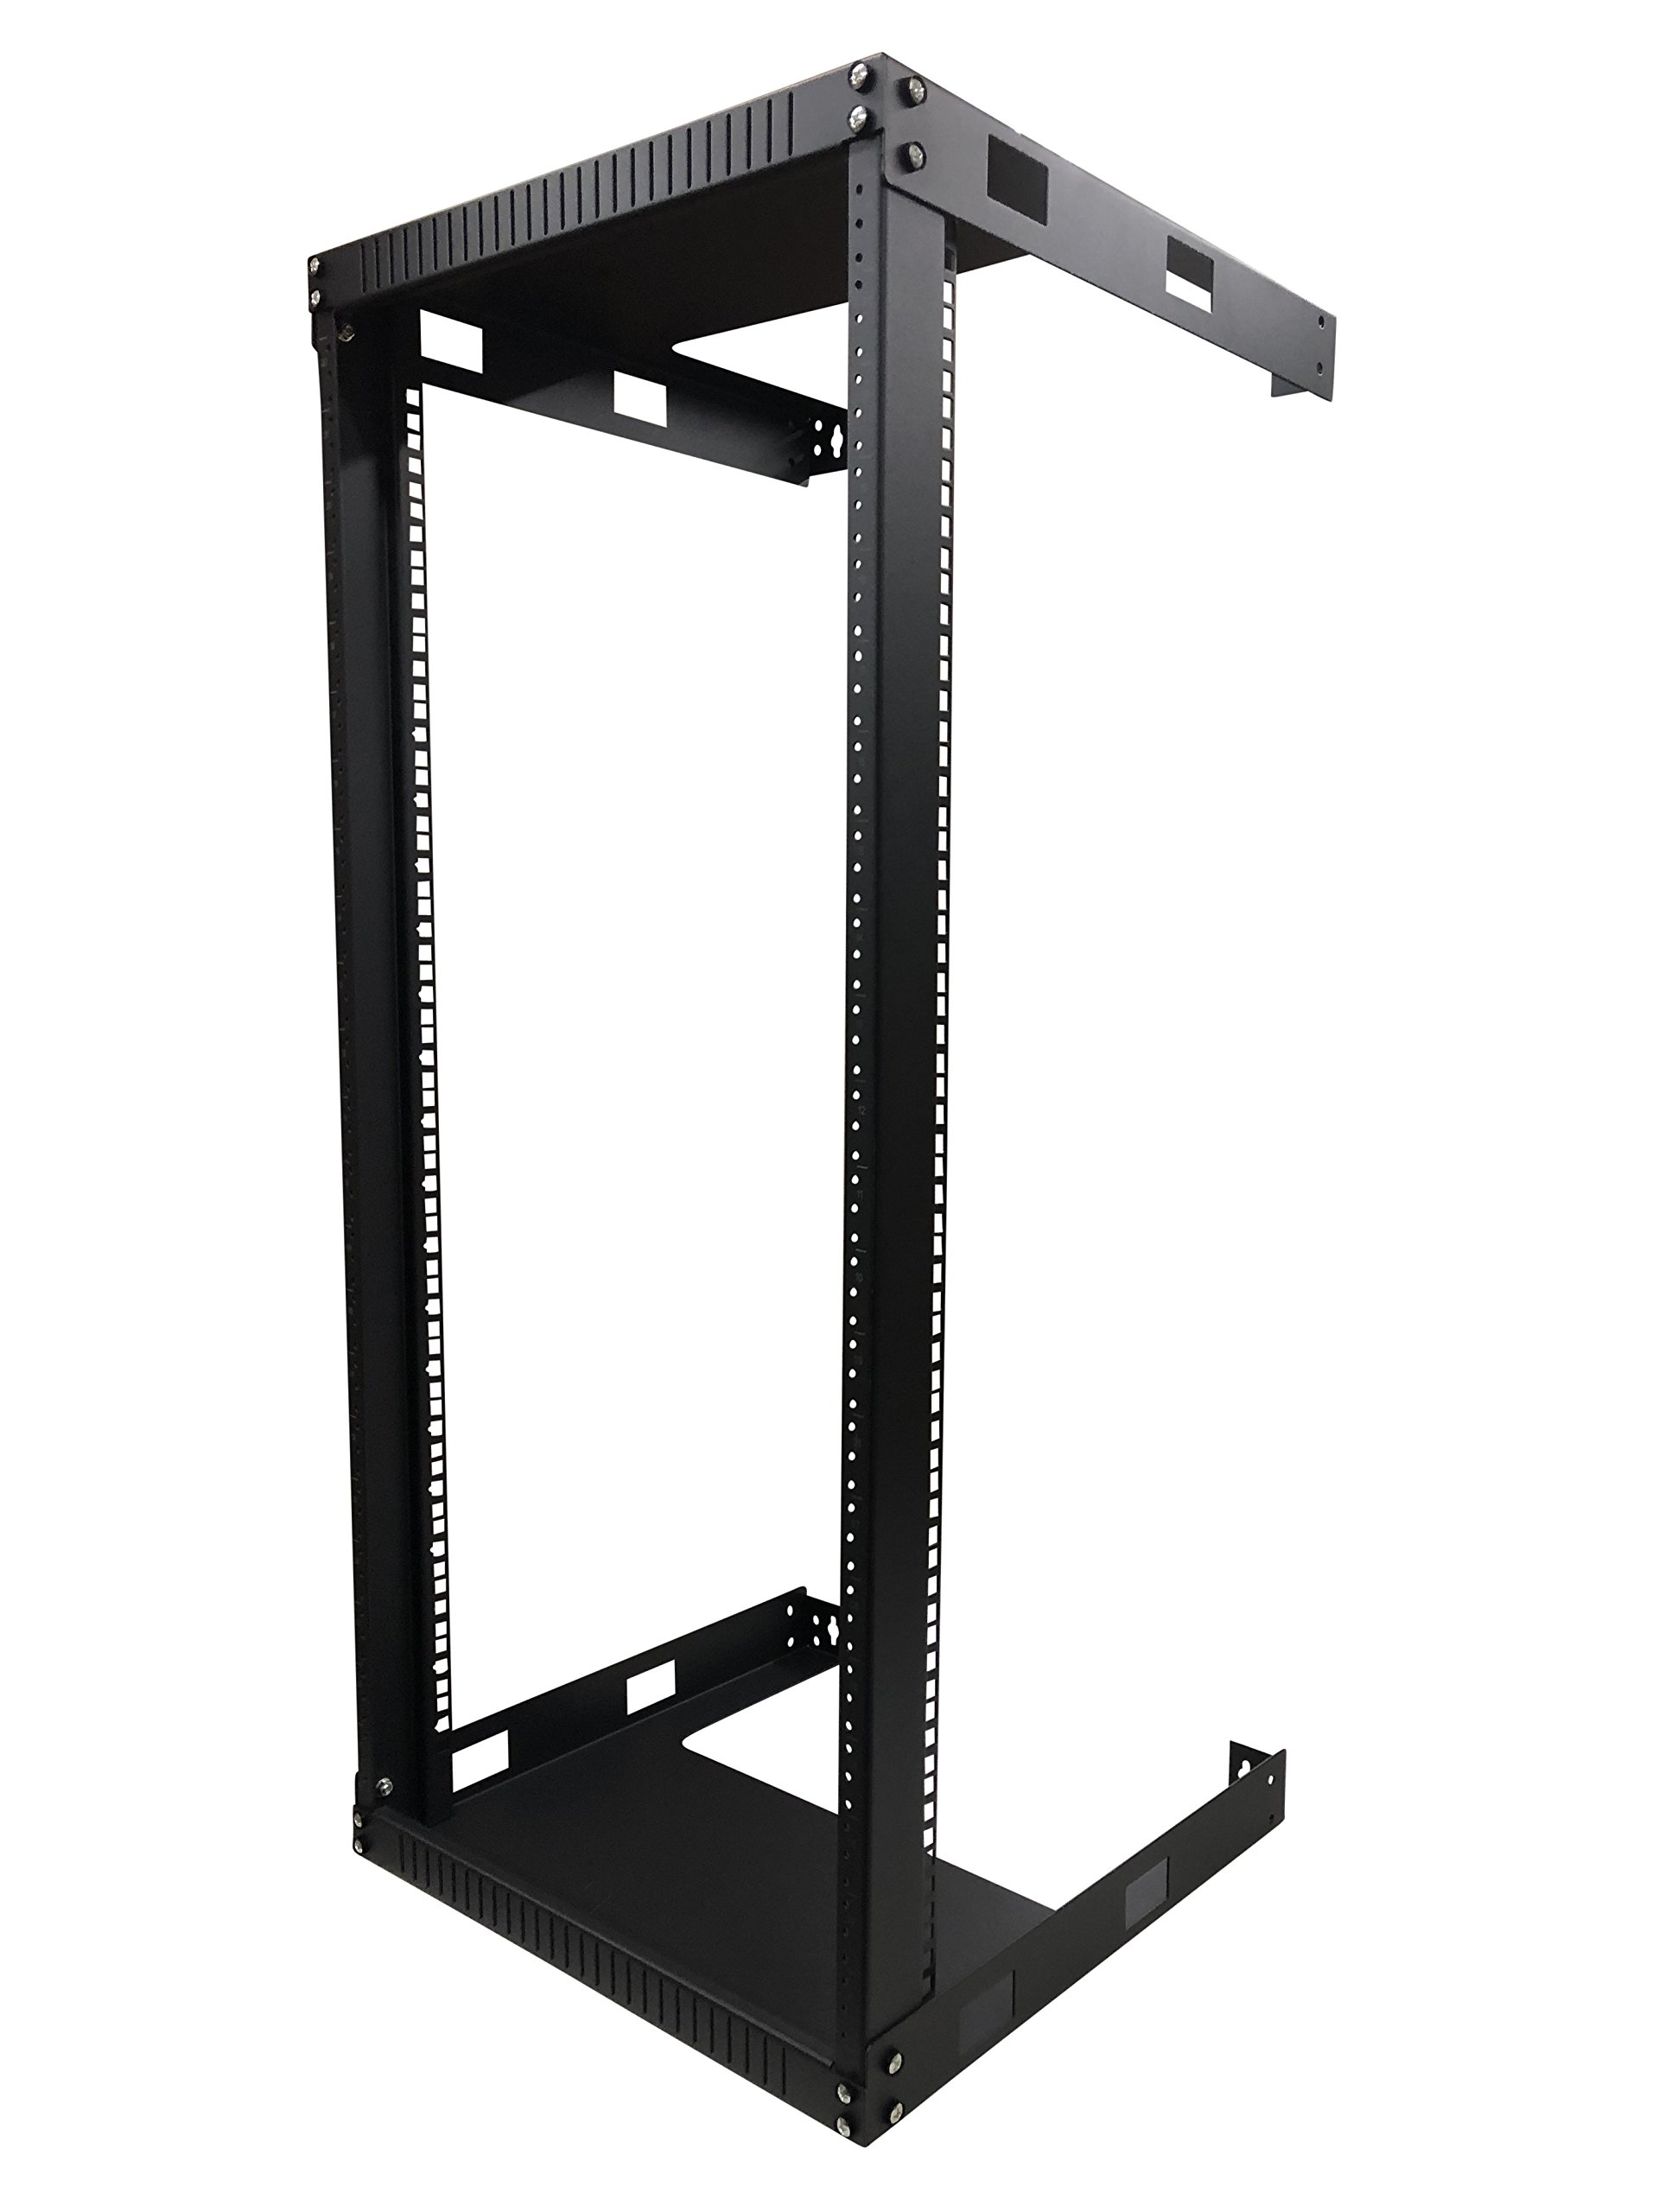 Kenuco 20U Wall Mount Open Frame Steel Network Equipment Rack 17.75 Inch Deep